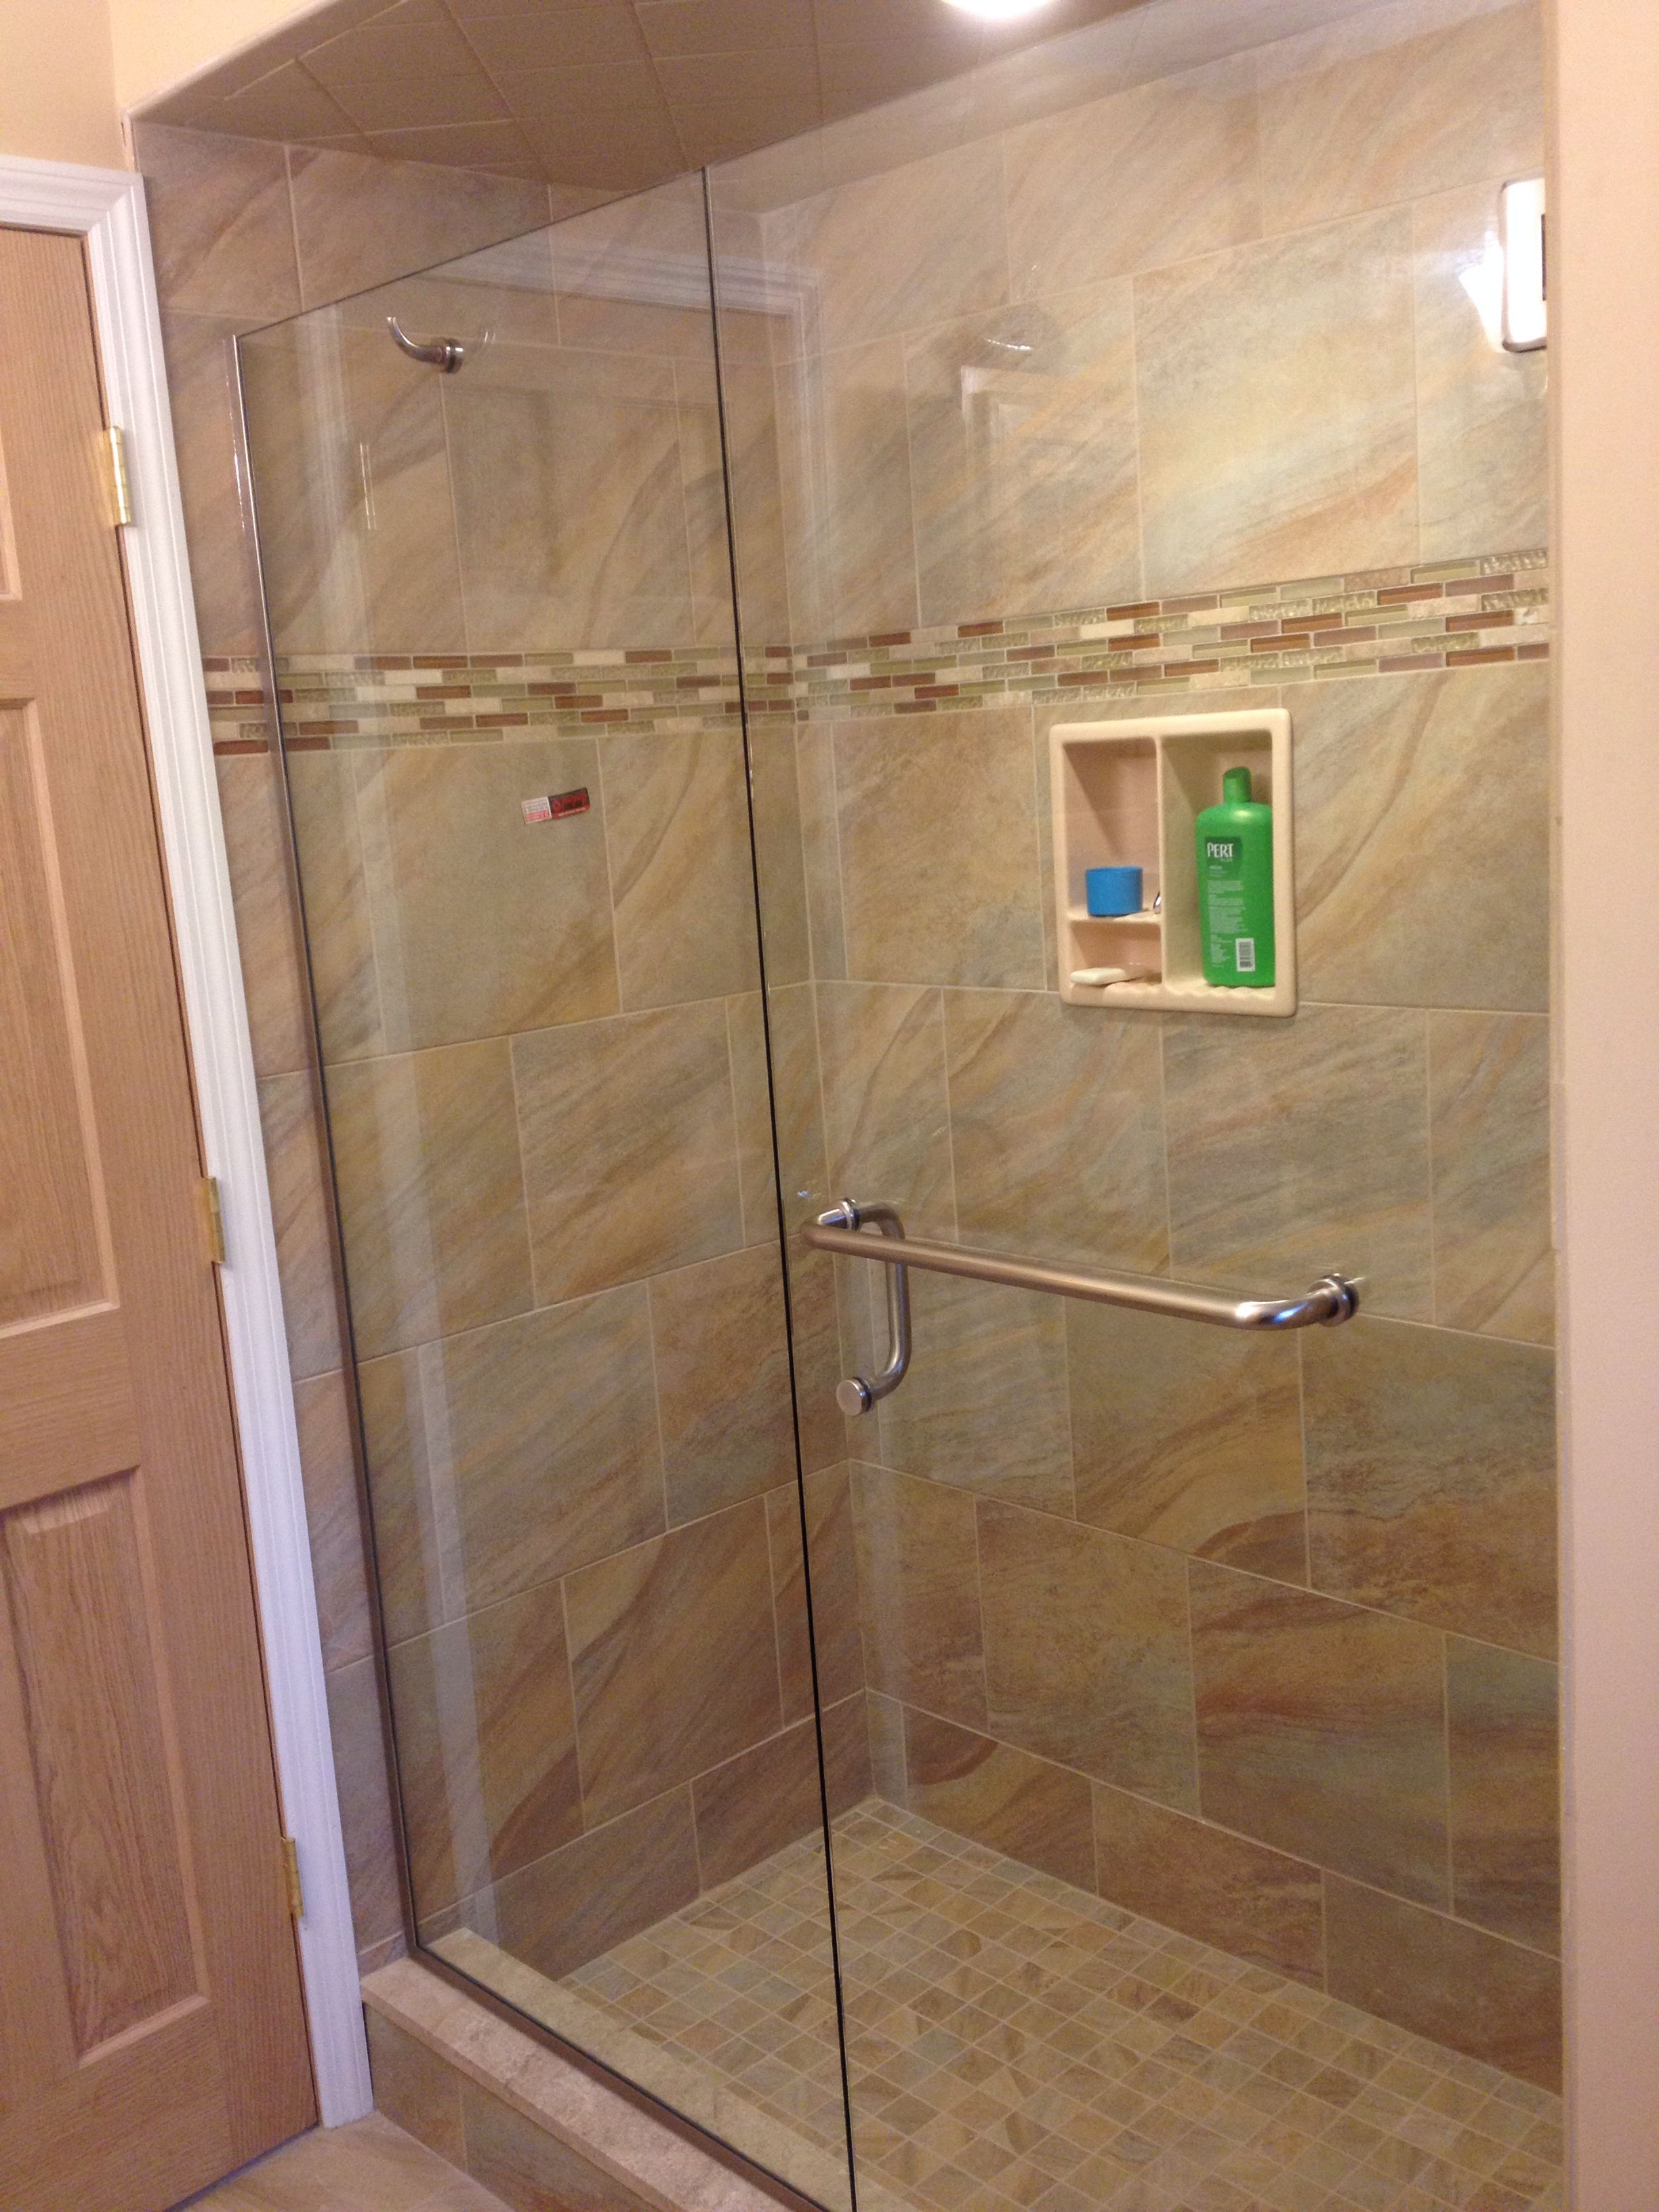 3 8 Frameless Door And Panel With Towel Bar And Robe Hook